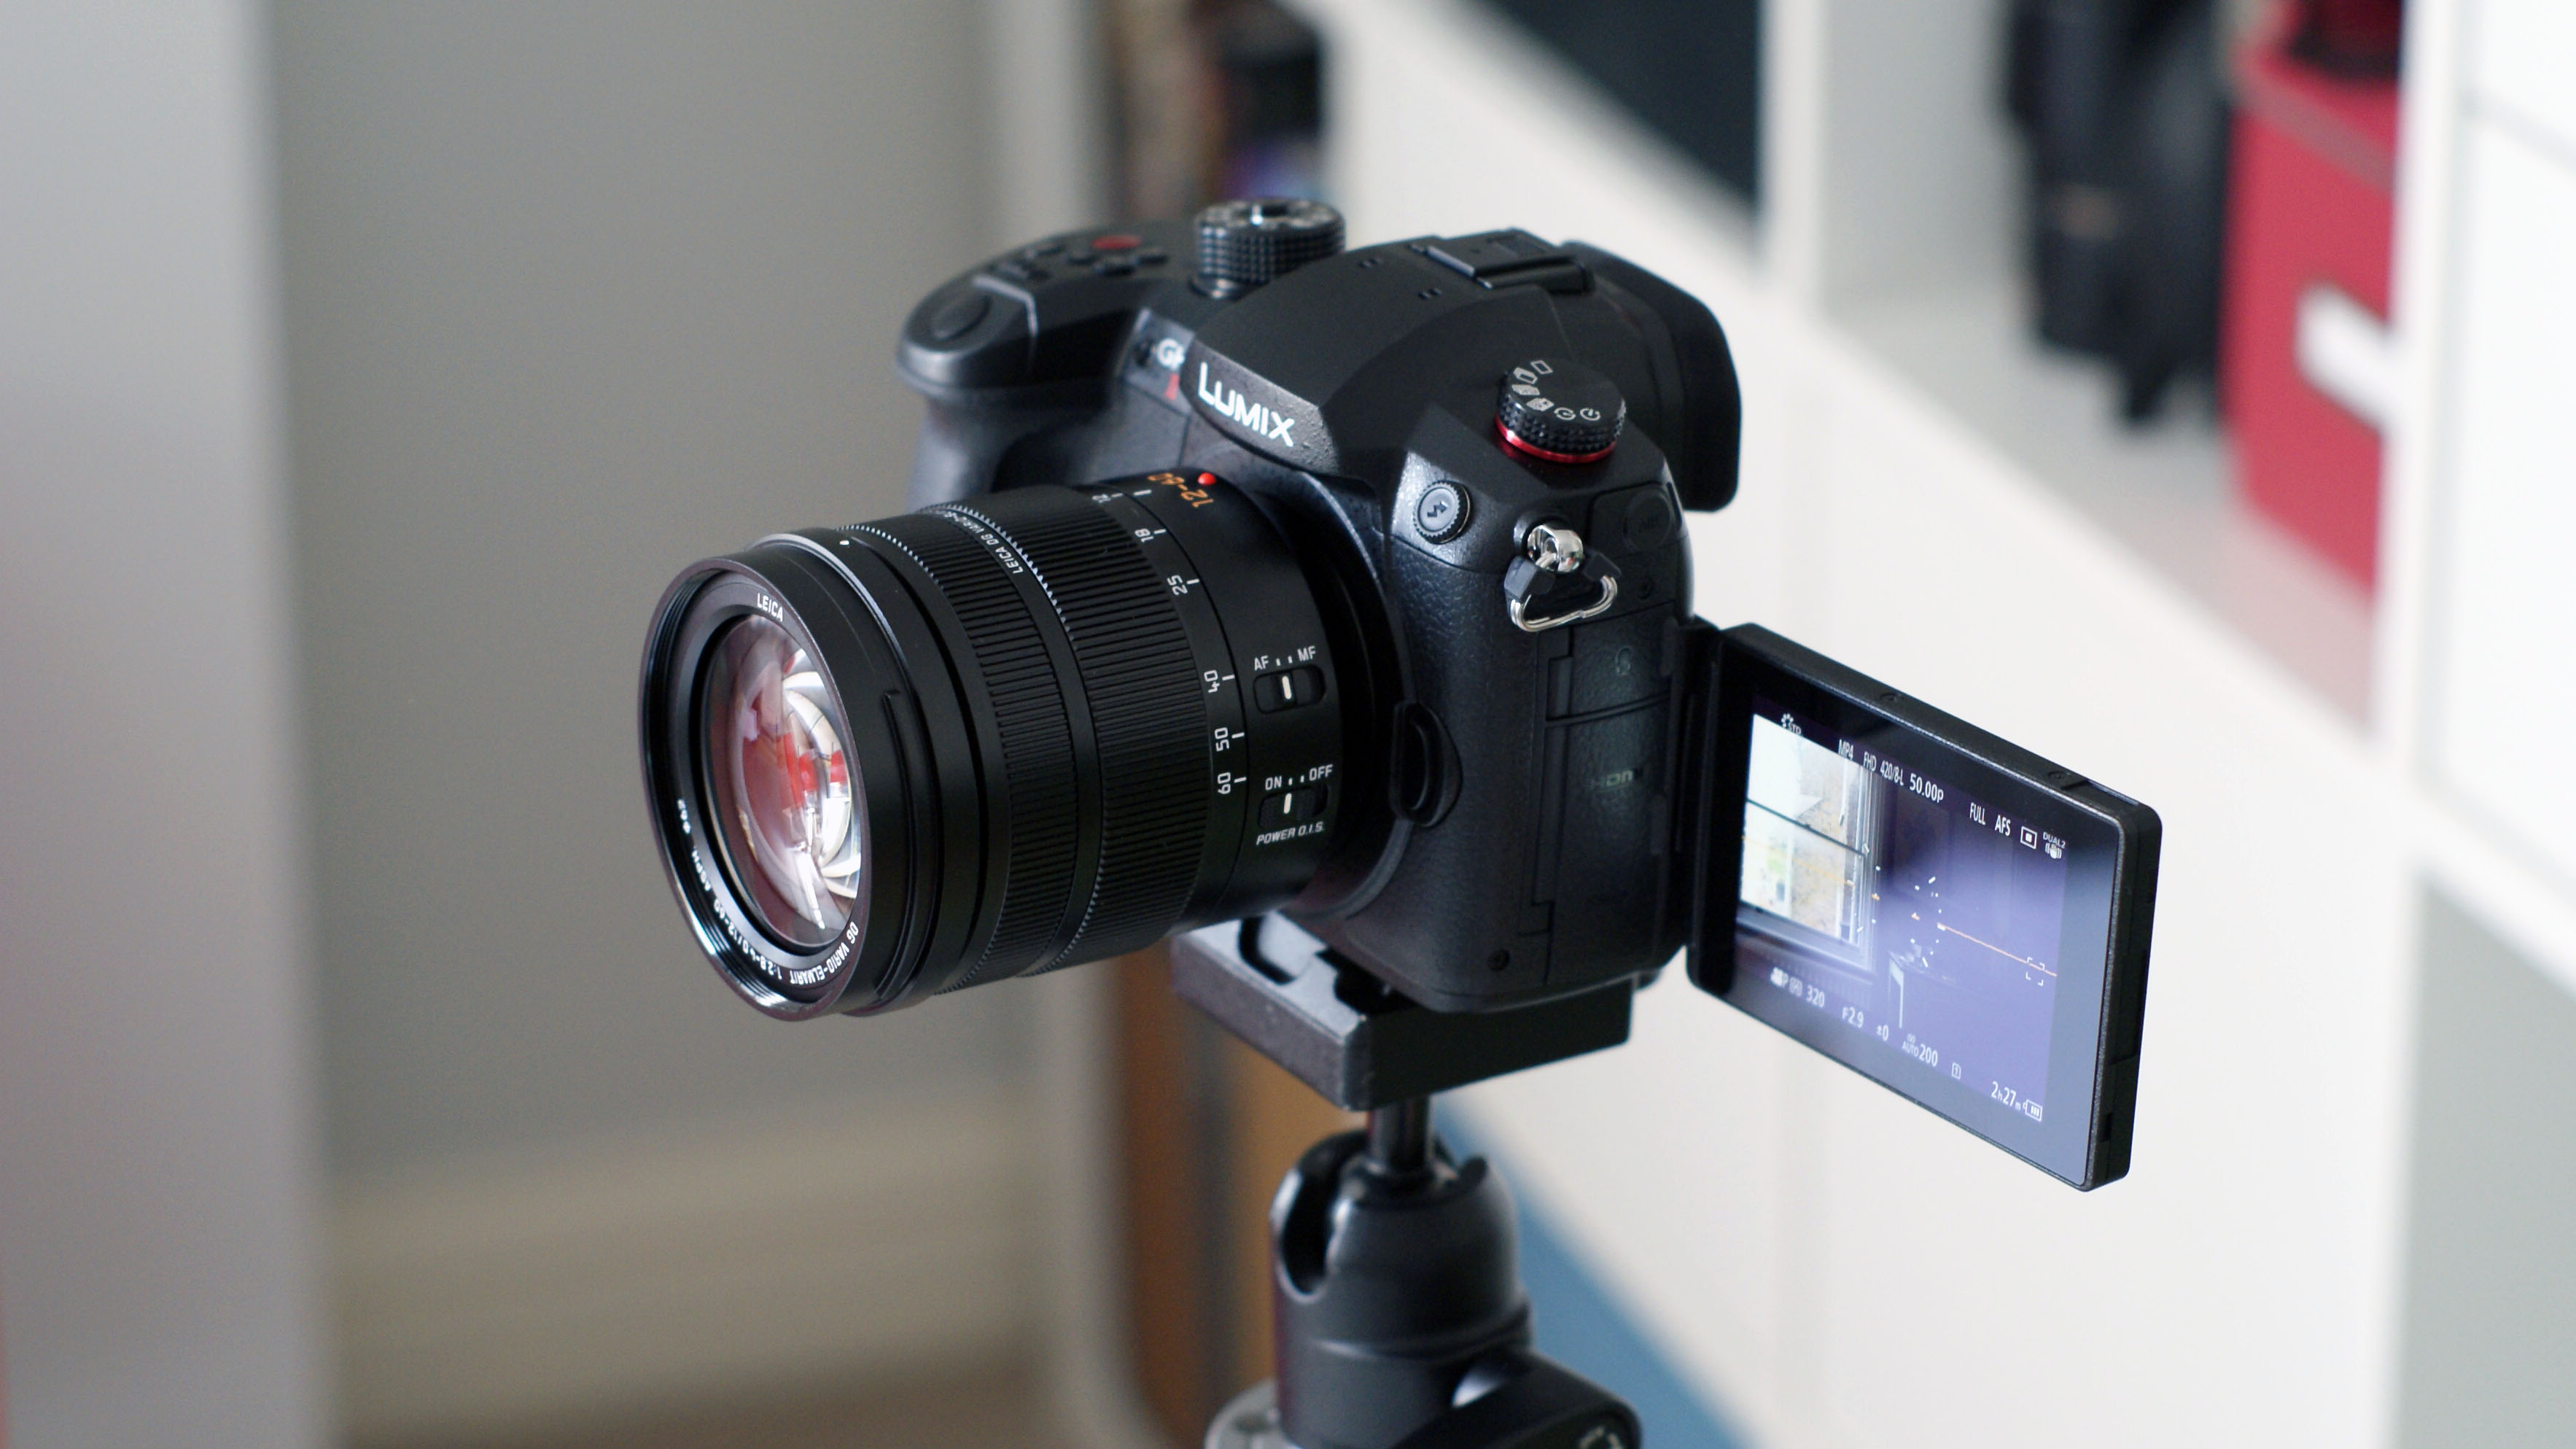 The Panasonic GH5 Mark II vlogging camera mounted on a tripod with its touchscreen pulled out